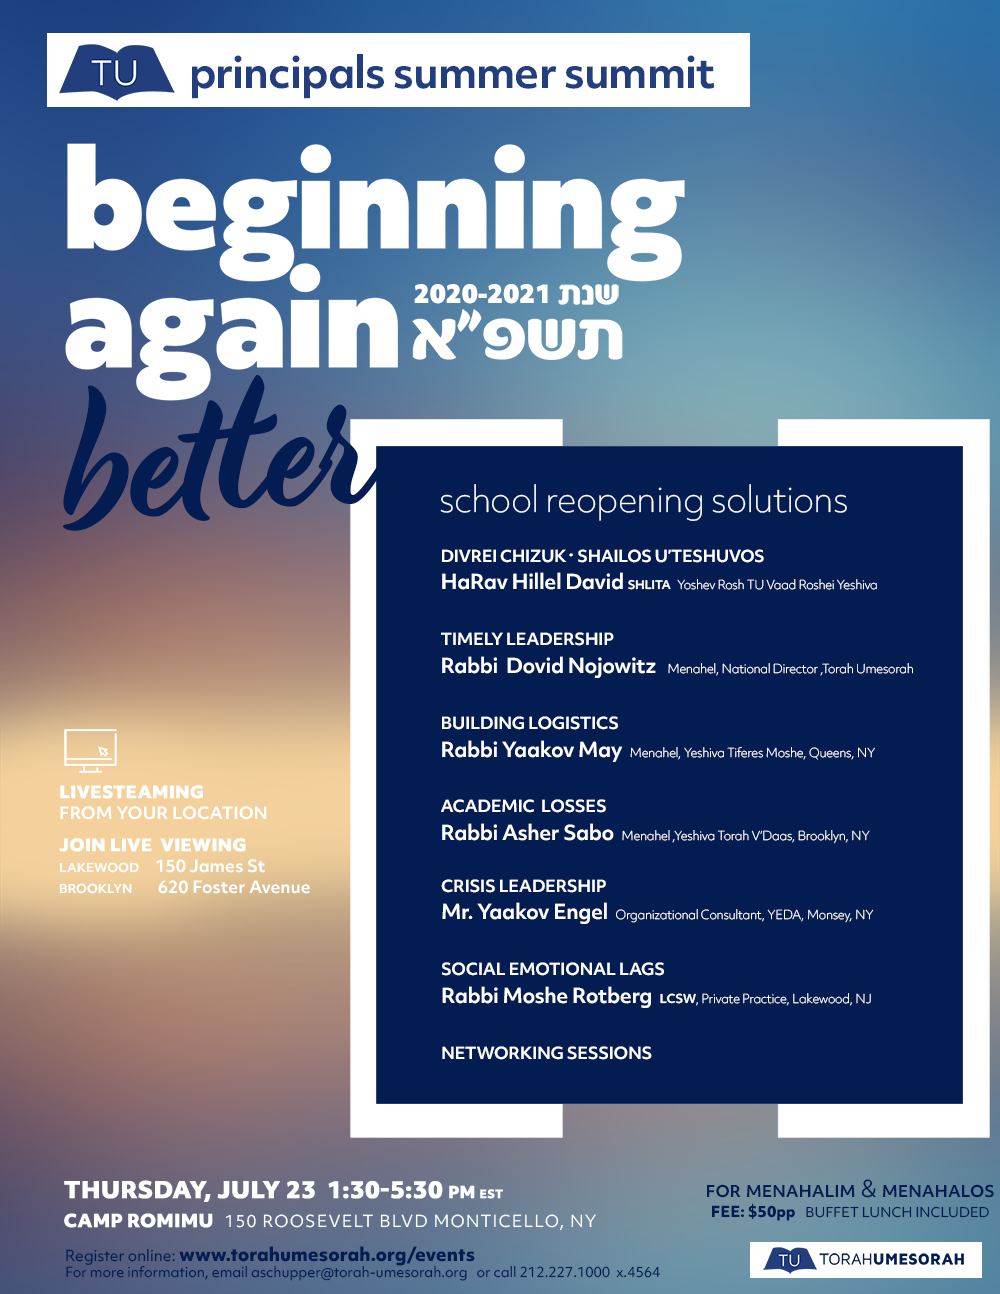 Beginning Again - Better: School Reopening Solutions